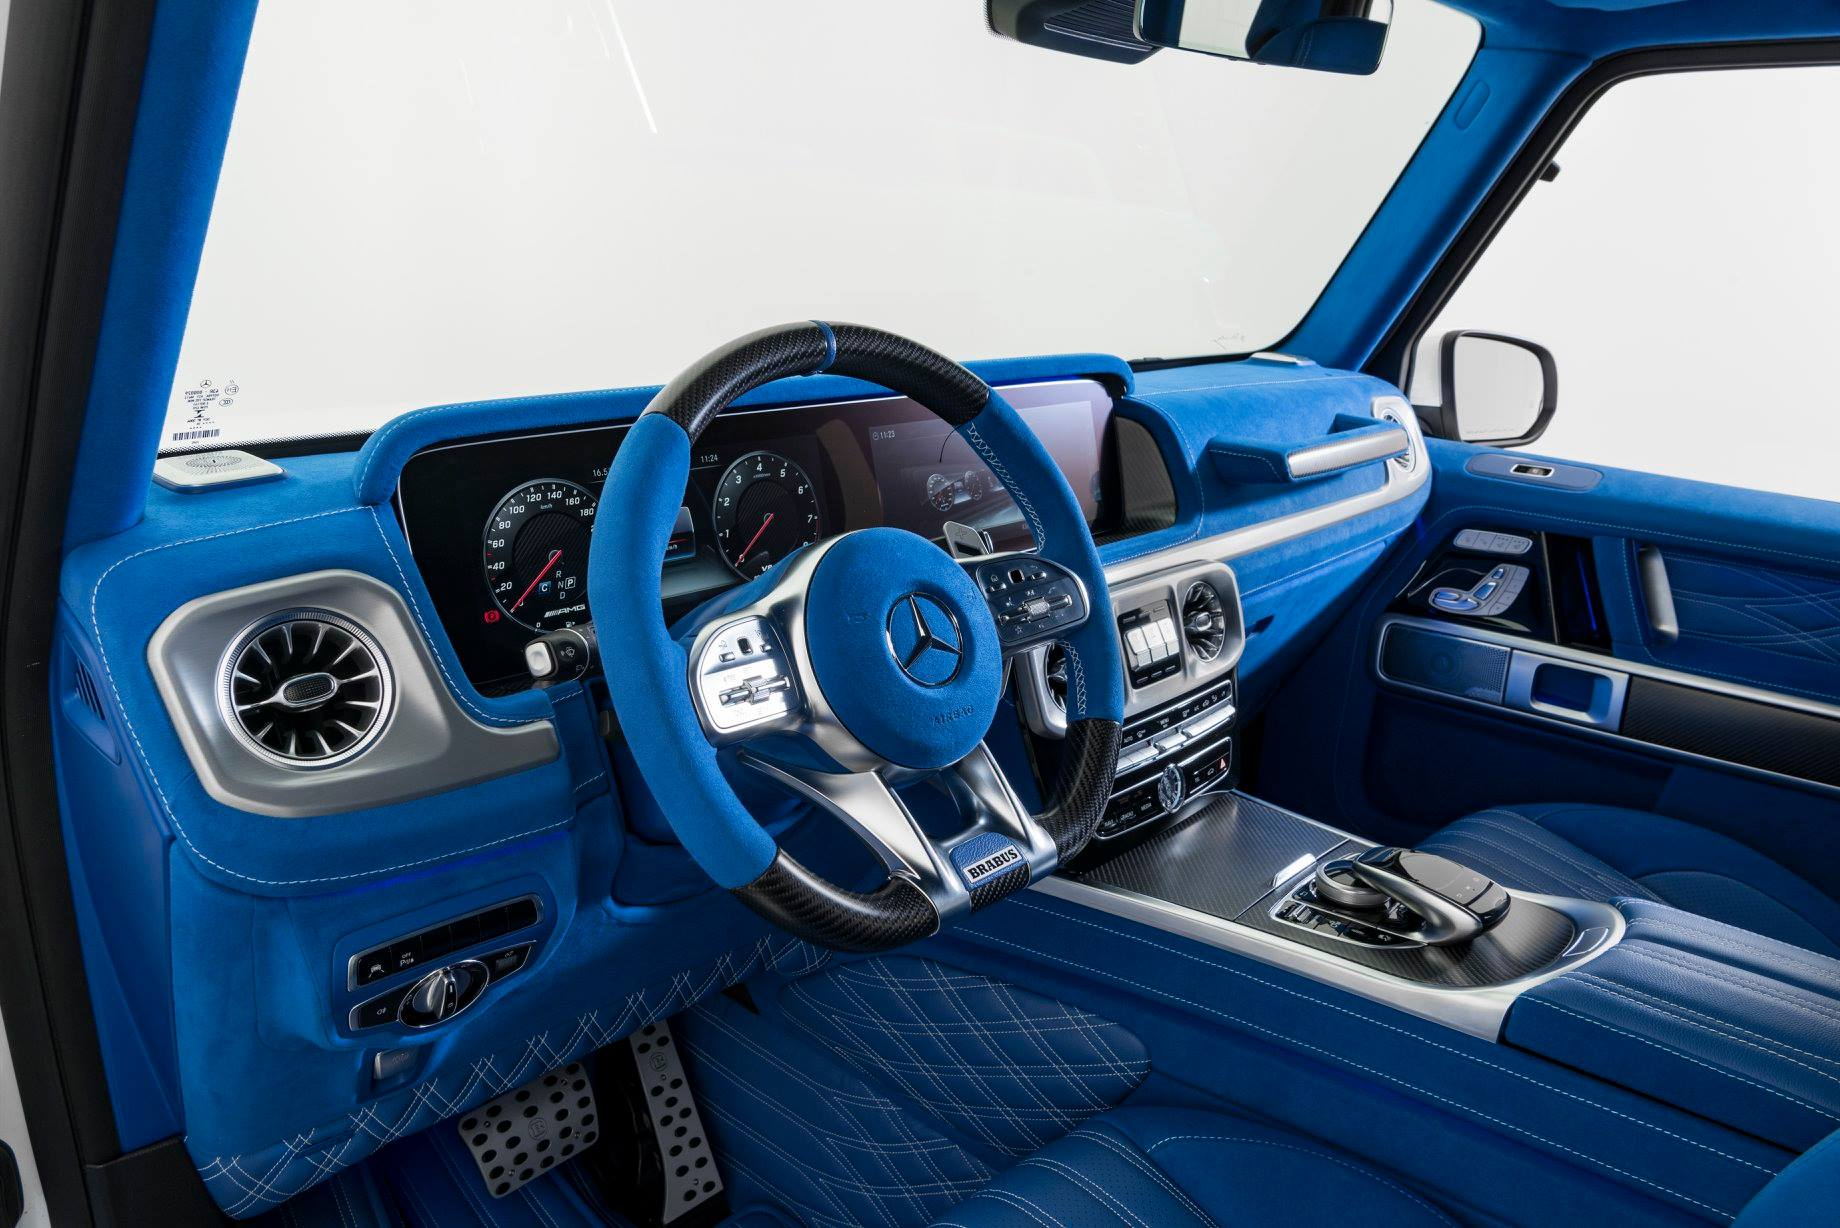 Brabus Upgrades The Interior Of The 2019 Mercedes Amg G63